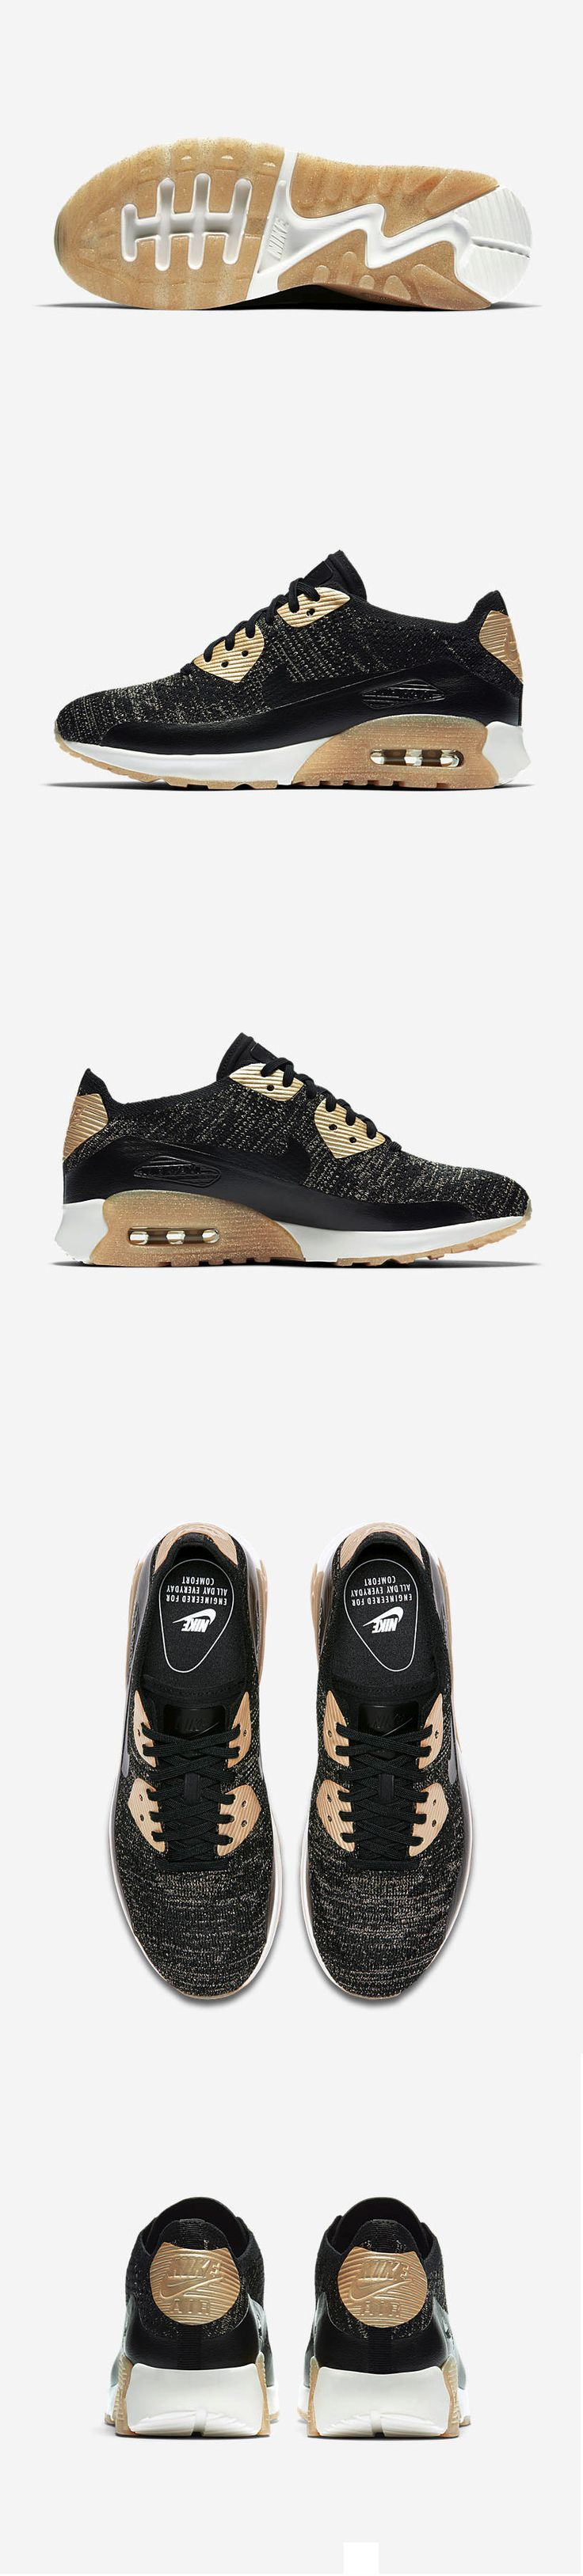 "#DAMSKIE #NIKE #AIR #MAX 90 #ULTRA 2.0 #FLYKNIT ""METALLIC – #BLACK / #GOLD"